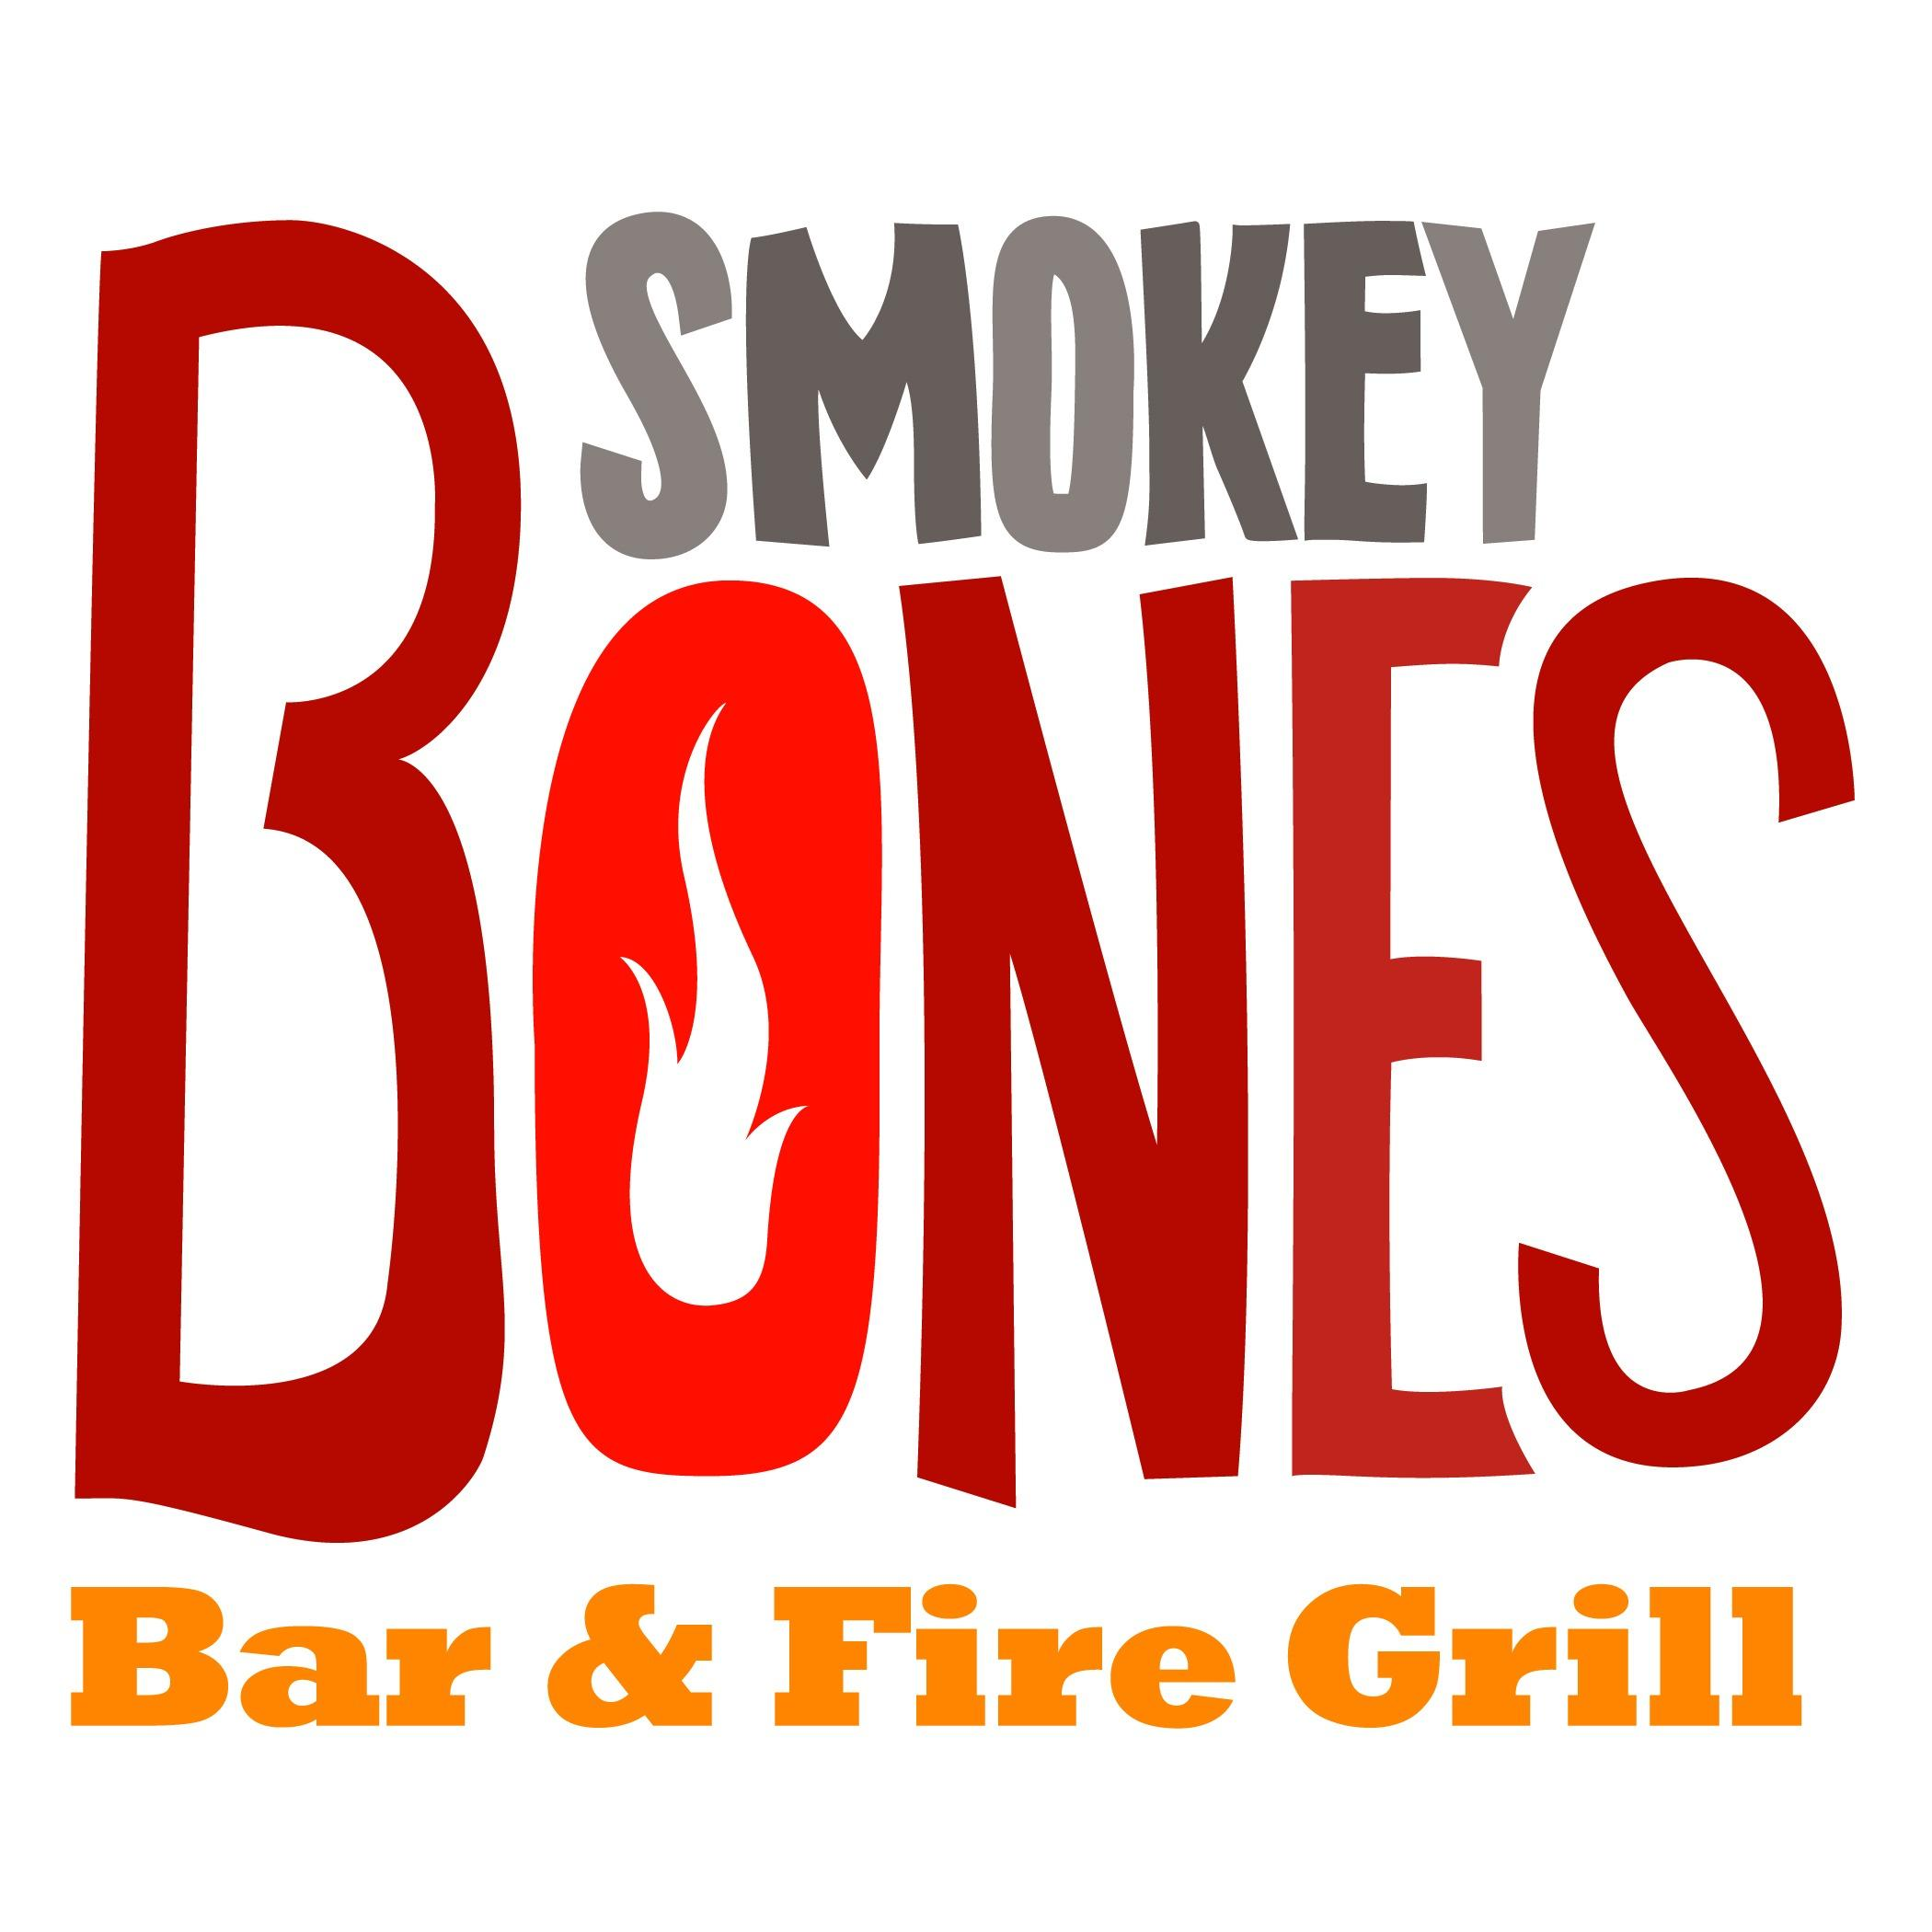 Smokey Bones Bar & Fire Grill - Newport News, VA 23602 - (757)988-0028 | ShowMeLocal.com